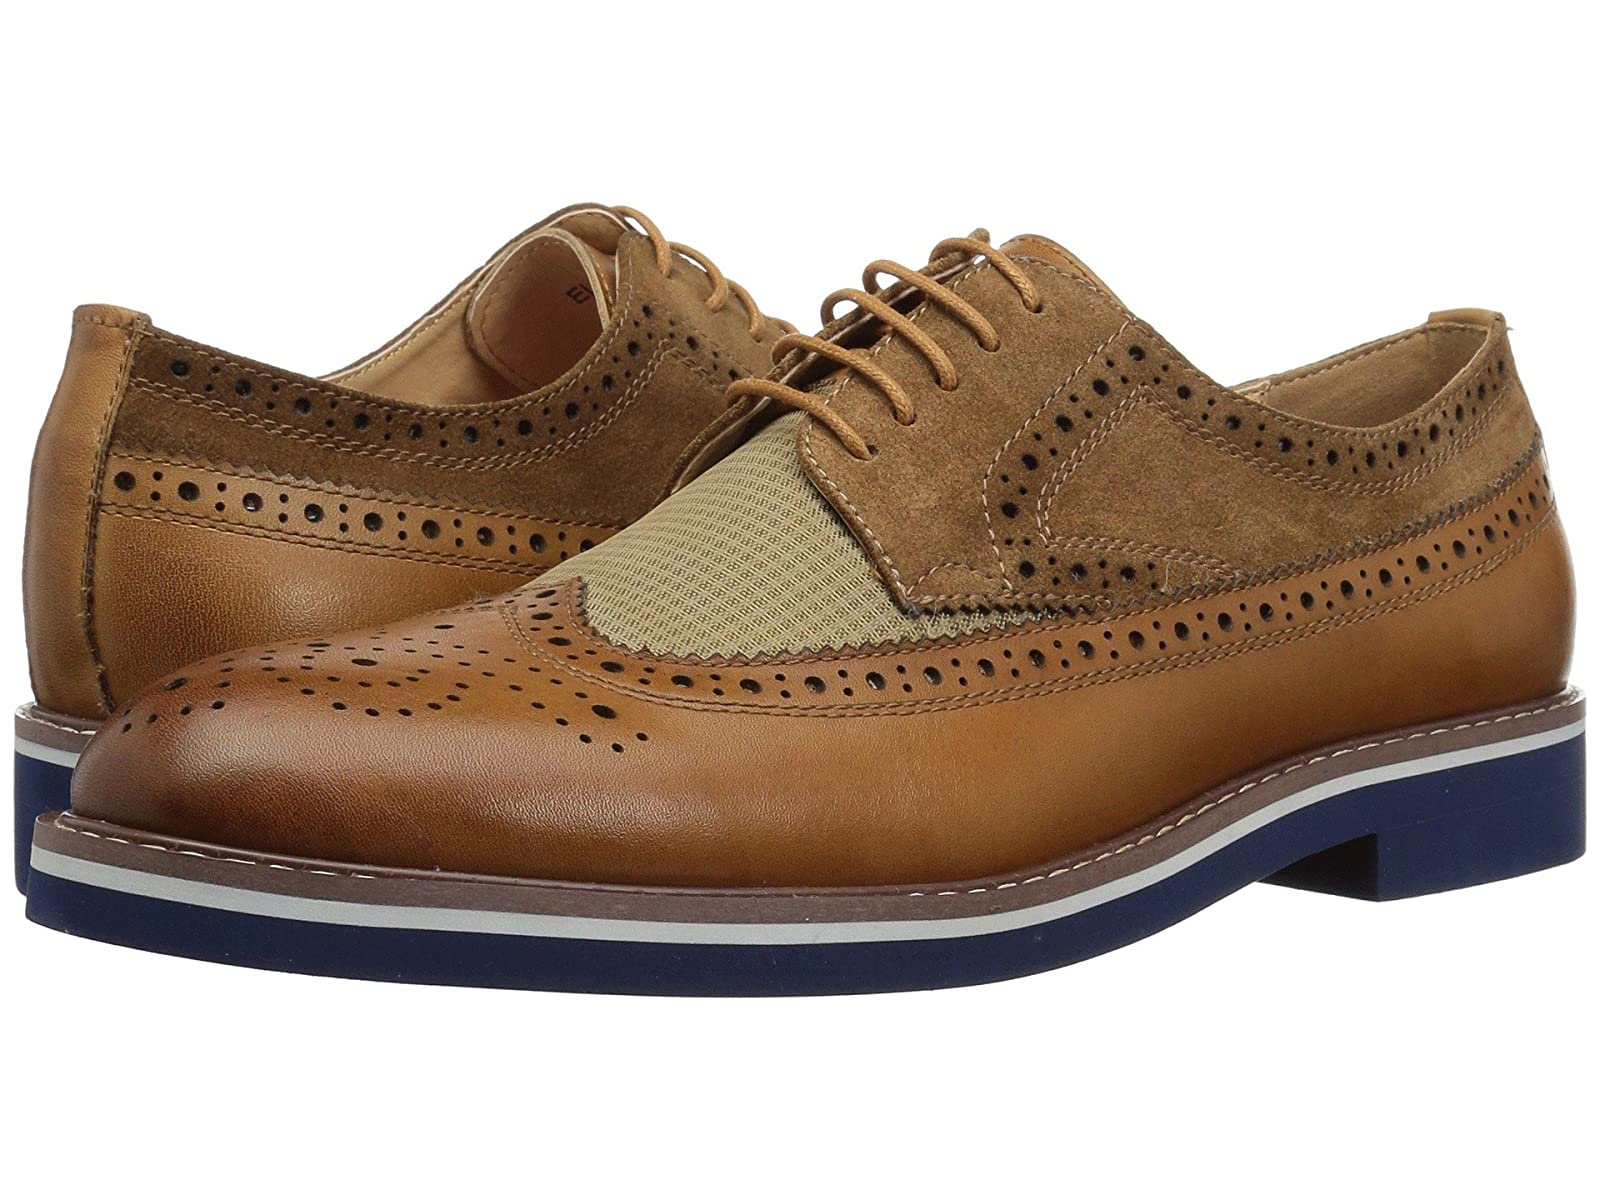 English Laundry MoresbyCheap and distinctive eye-catching shoes